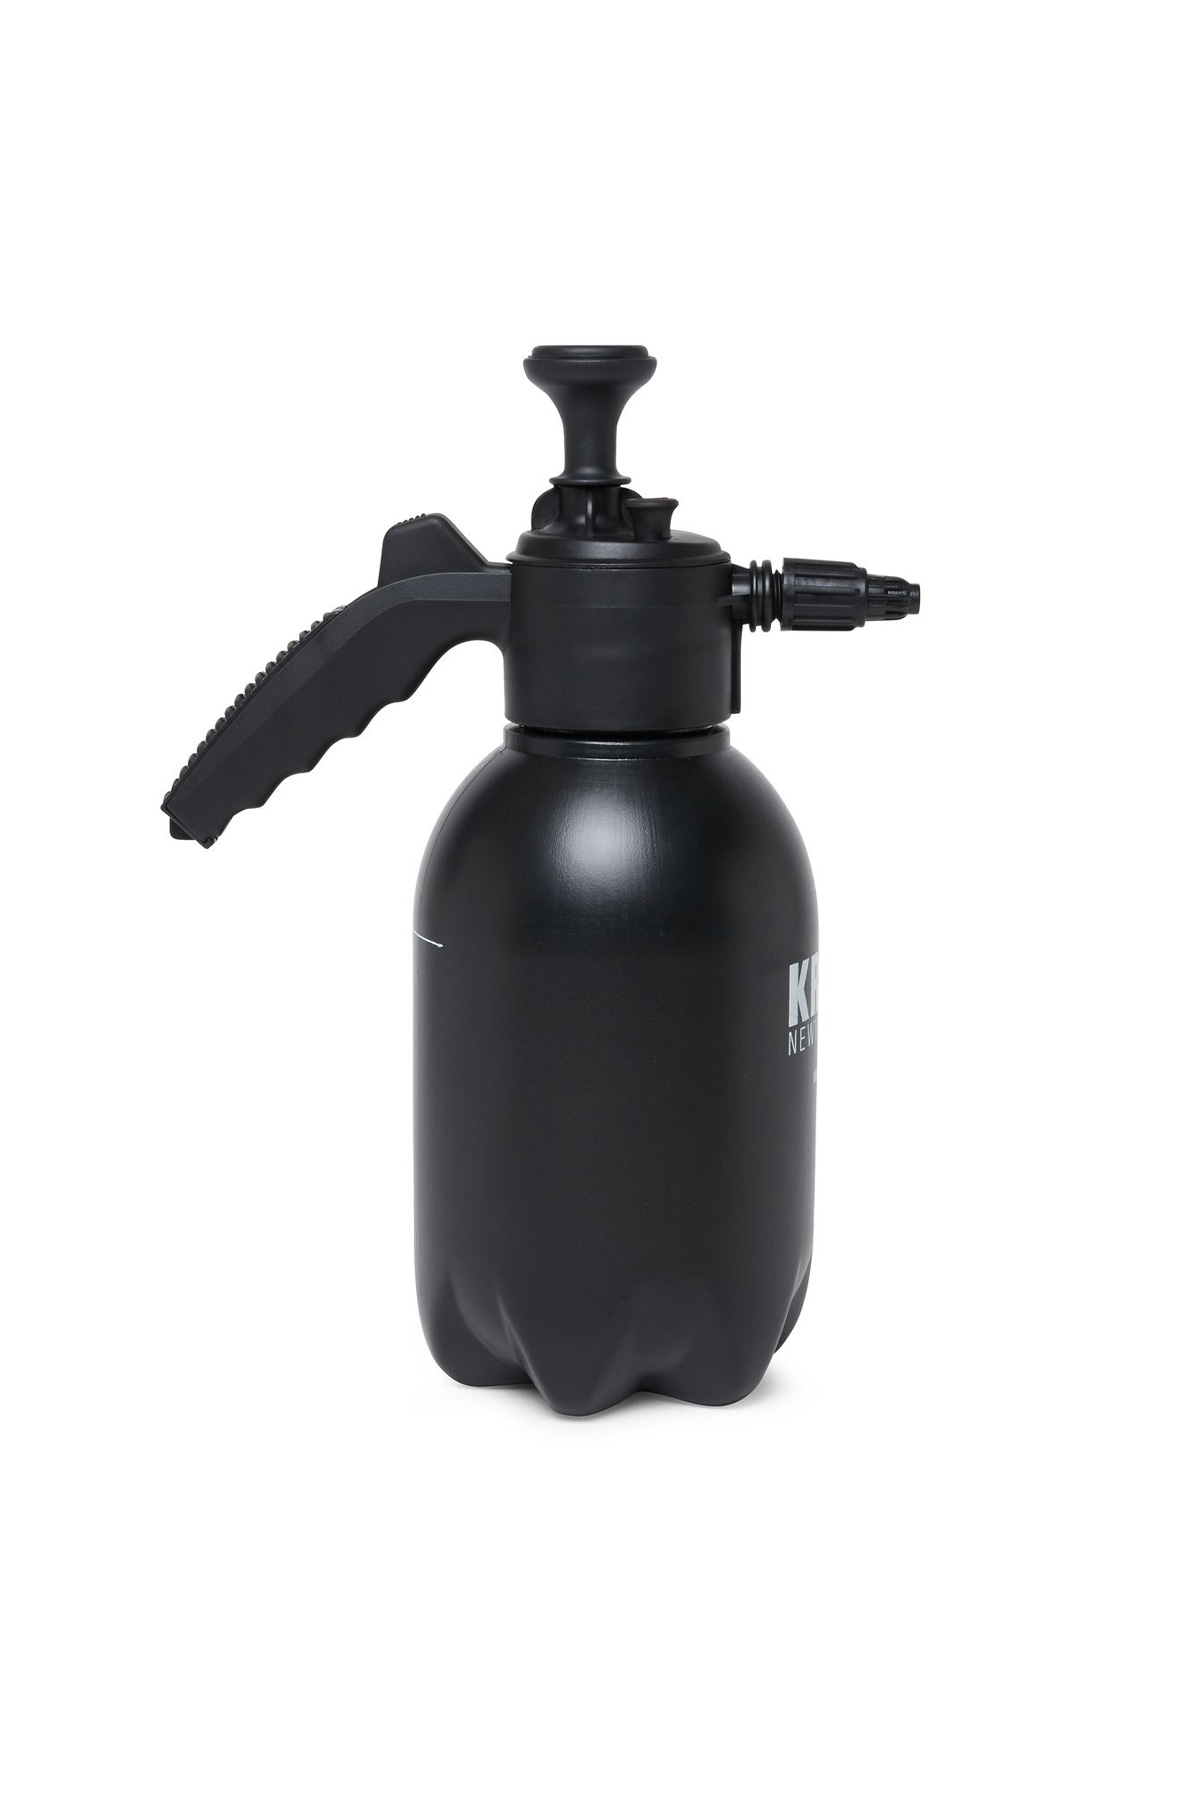 Krink MINI sprayer